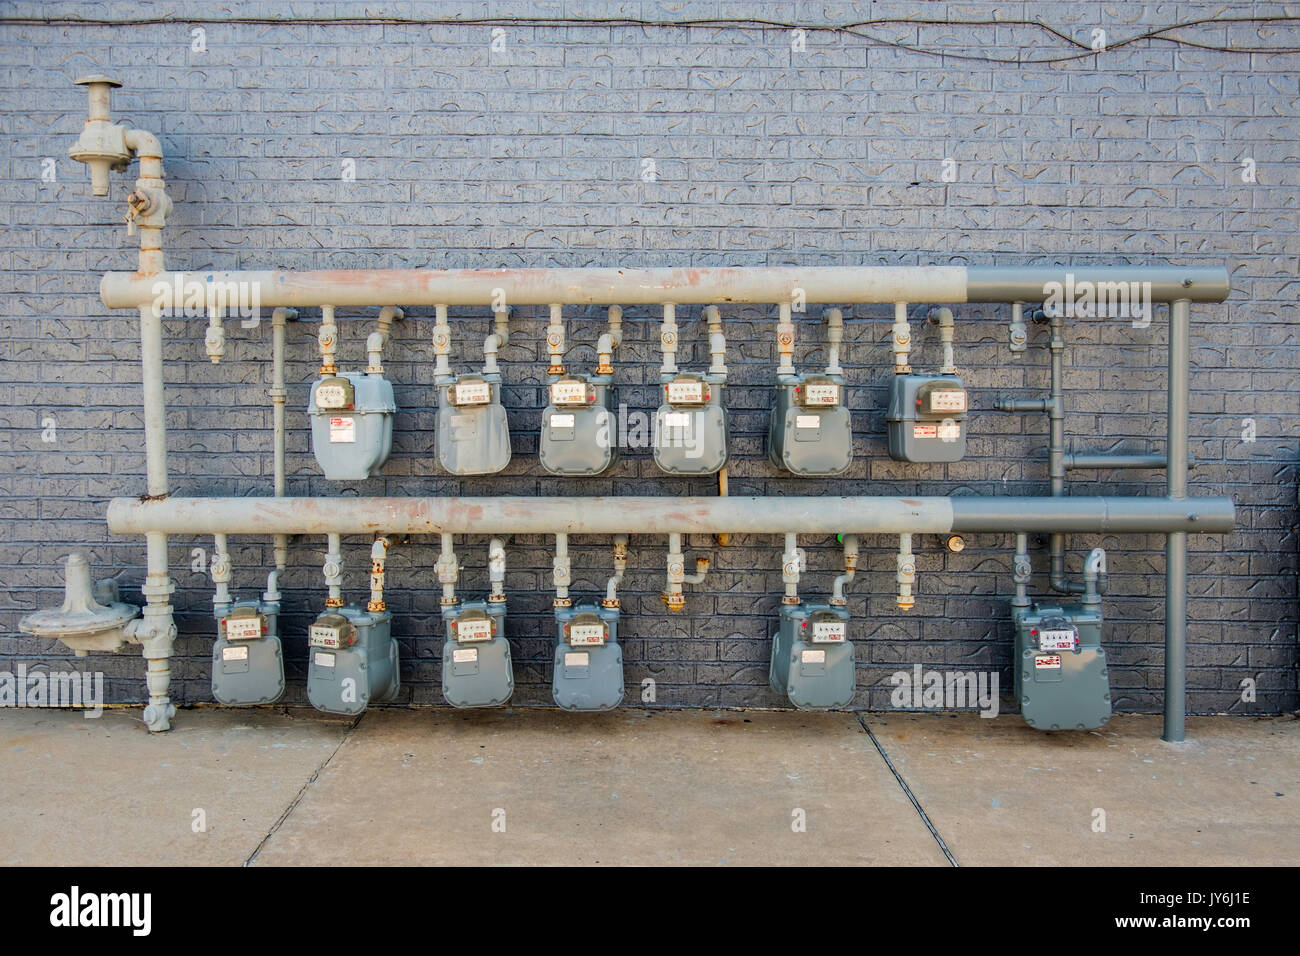 An array of natural gas meters metering gas usage by individual consumers behind a building in a strip mall. Norman, Oklahoma, USA. - Stock Image